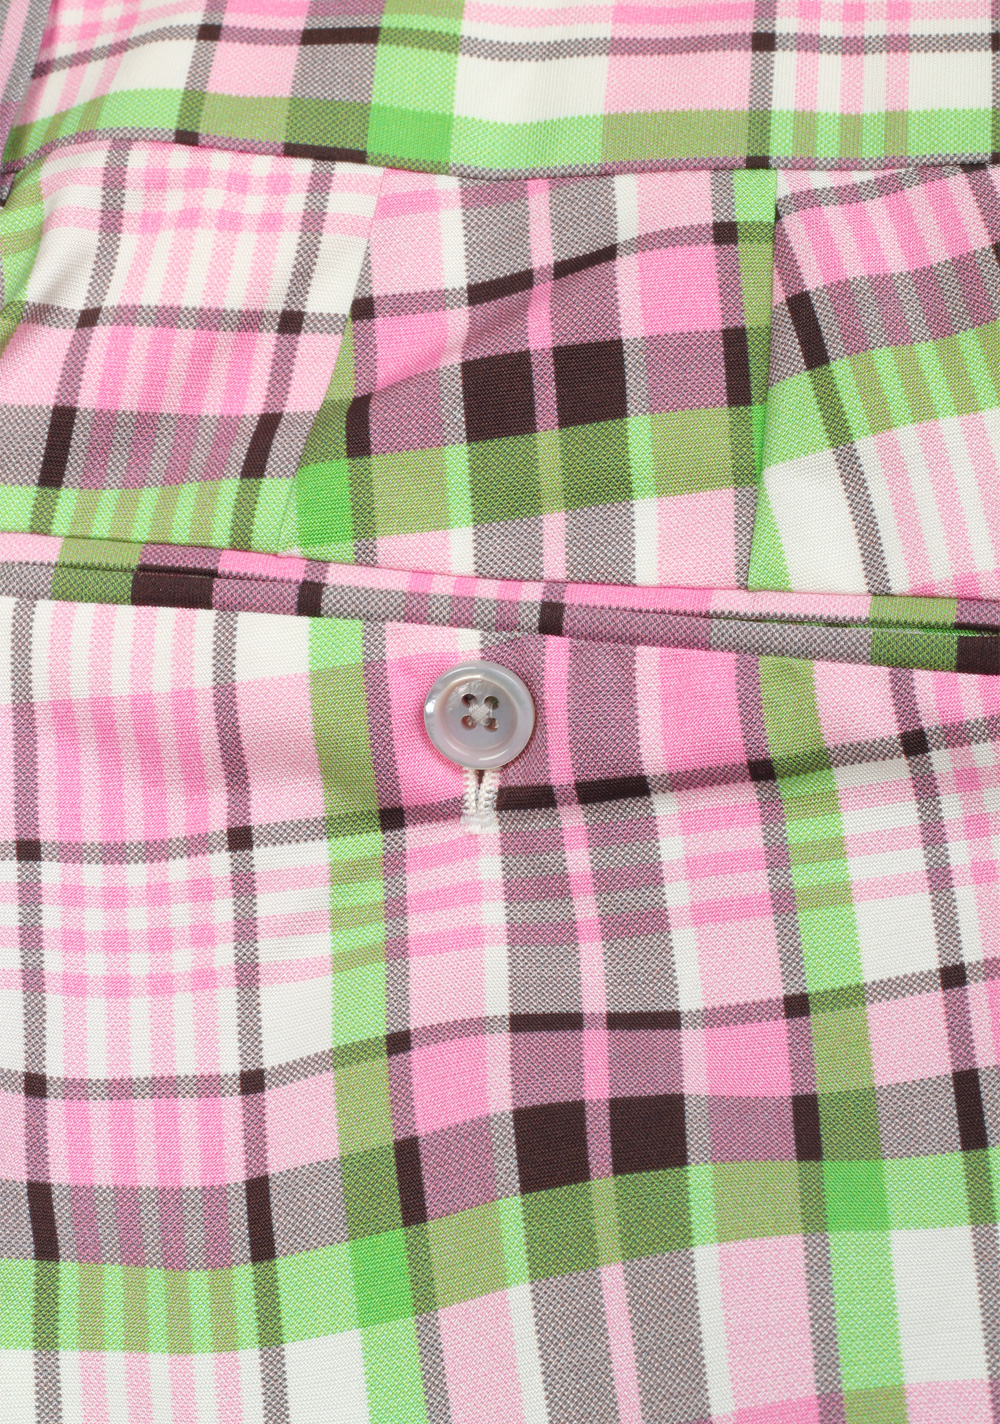 TOM FORD Pink Green Checked Silk Cotton Trousers Size 50 / 34 U.S. | Costume Limité